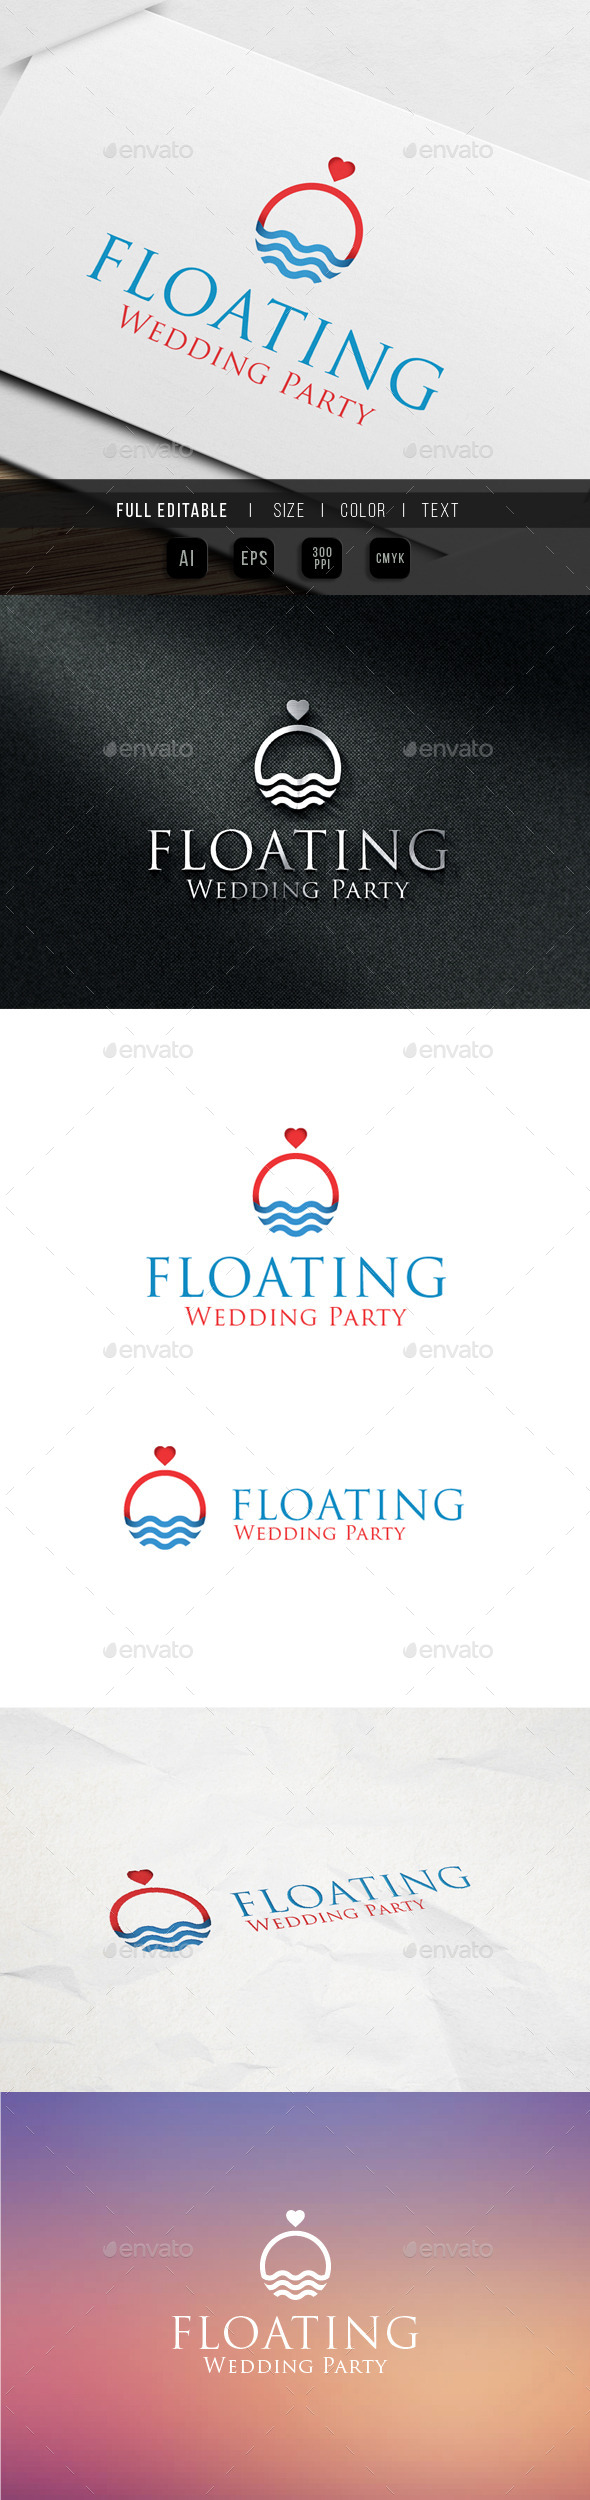 GraphicRiver Floating Wedding Events & Party 9895520